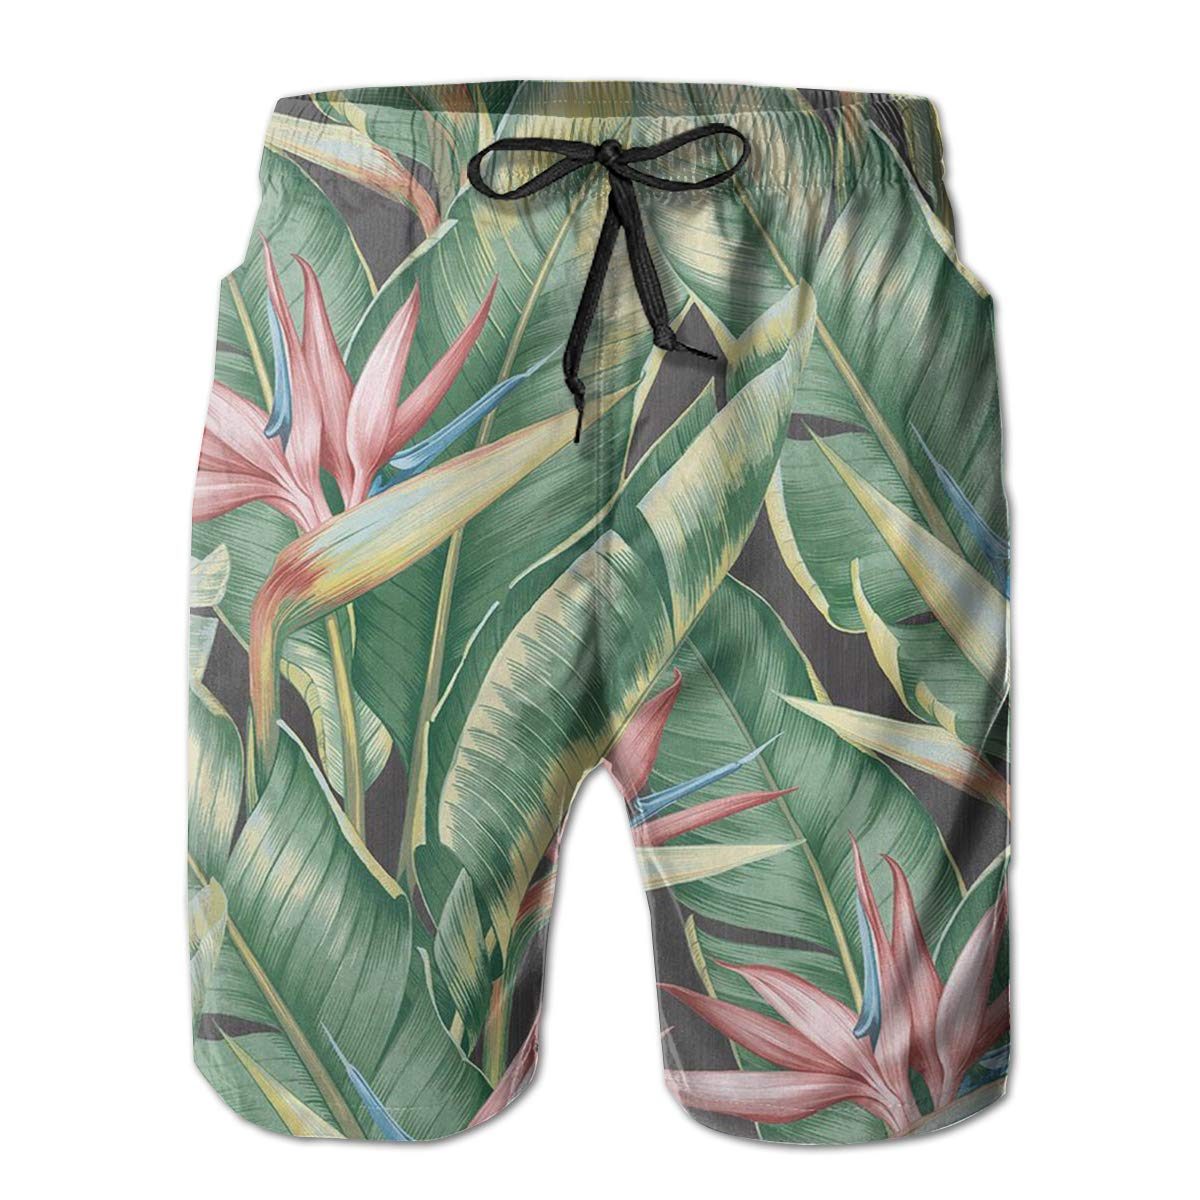 Hateone Life Mens Beach Shorts Quick Dry Leaf Kenneth James Summer Holiday Mesh Lining Swimwear Board Shorts with Pockets XXL